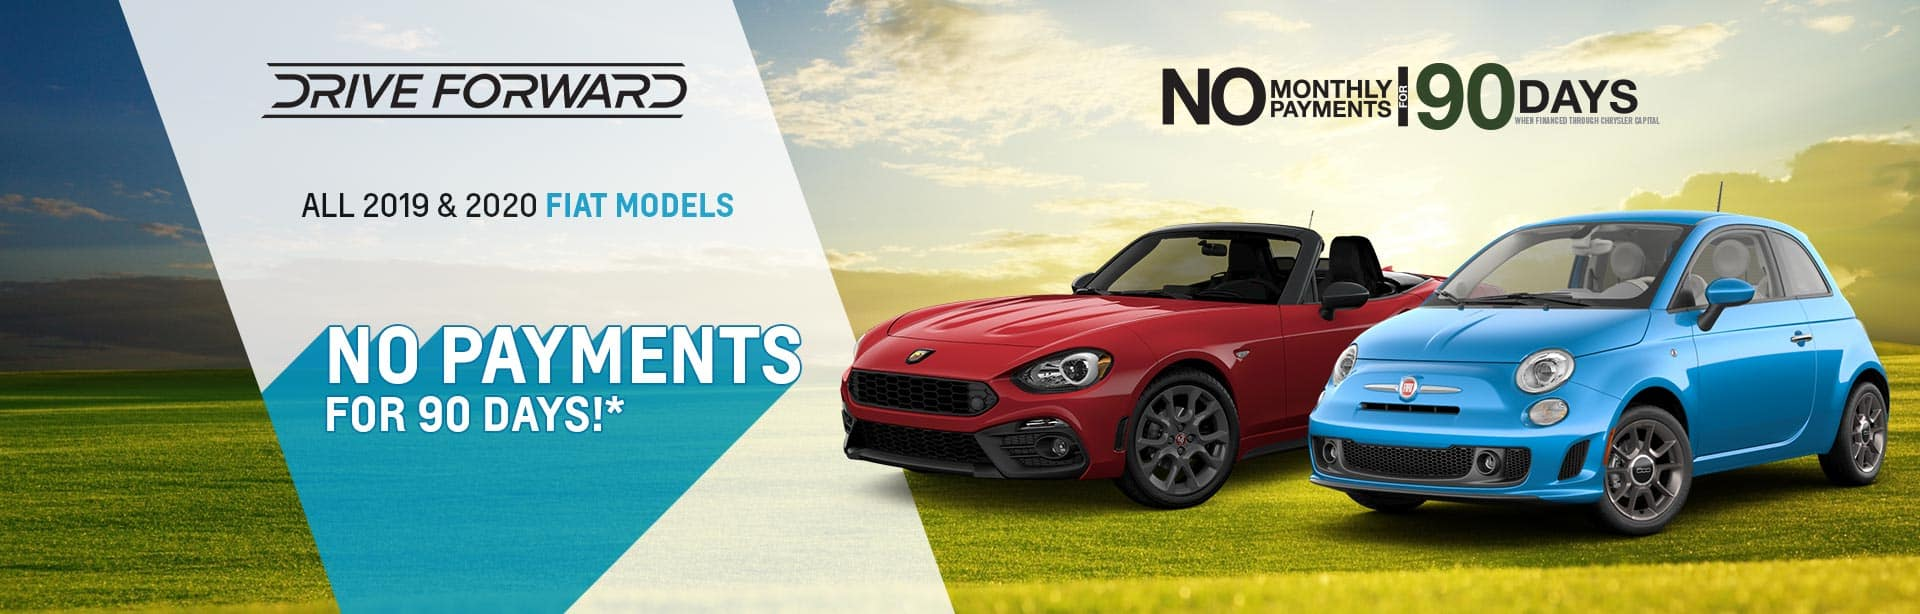 No payments for 90 days on a New FIAT near Indianapolis, Indiana